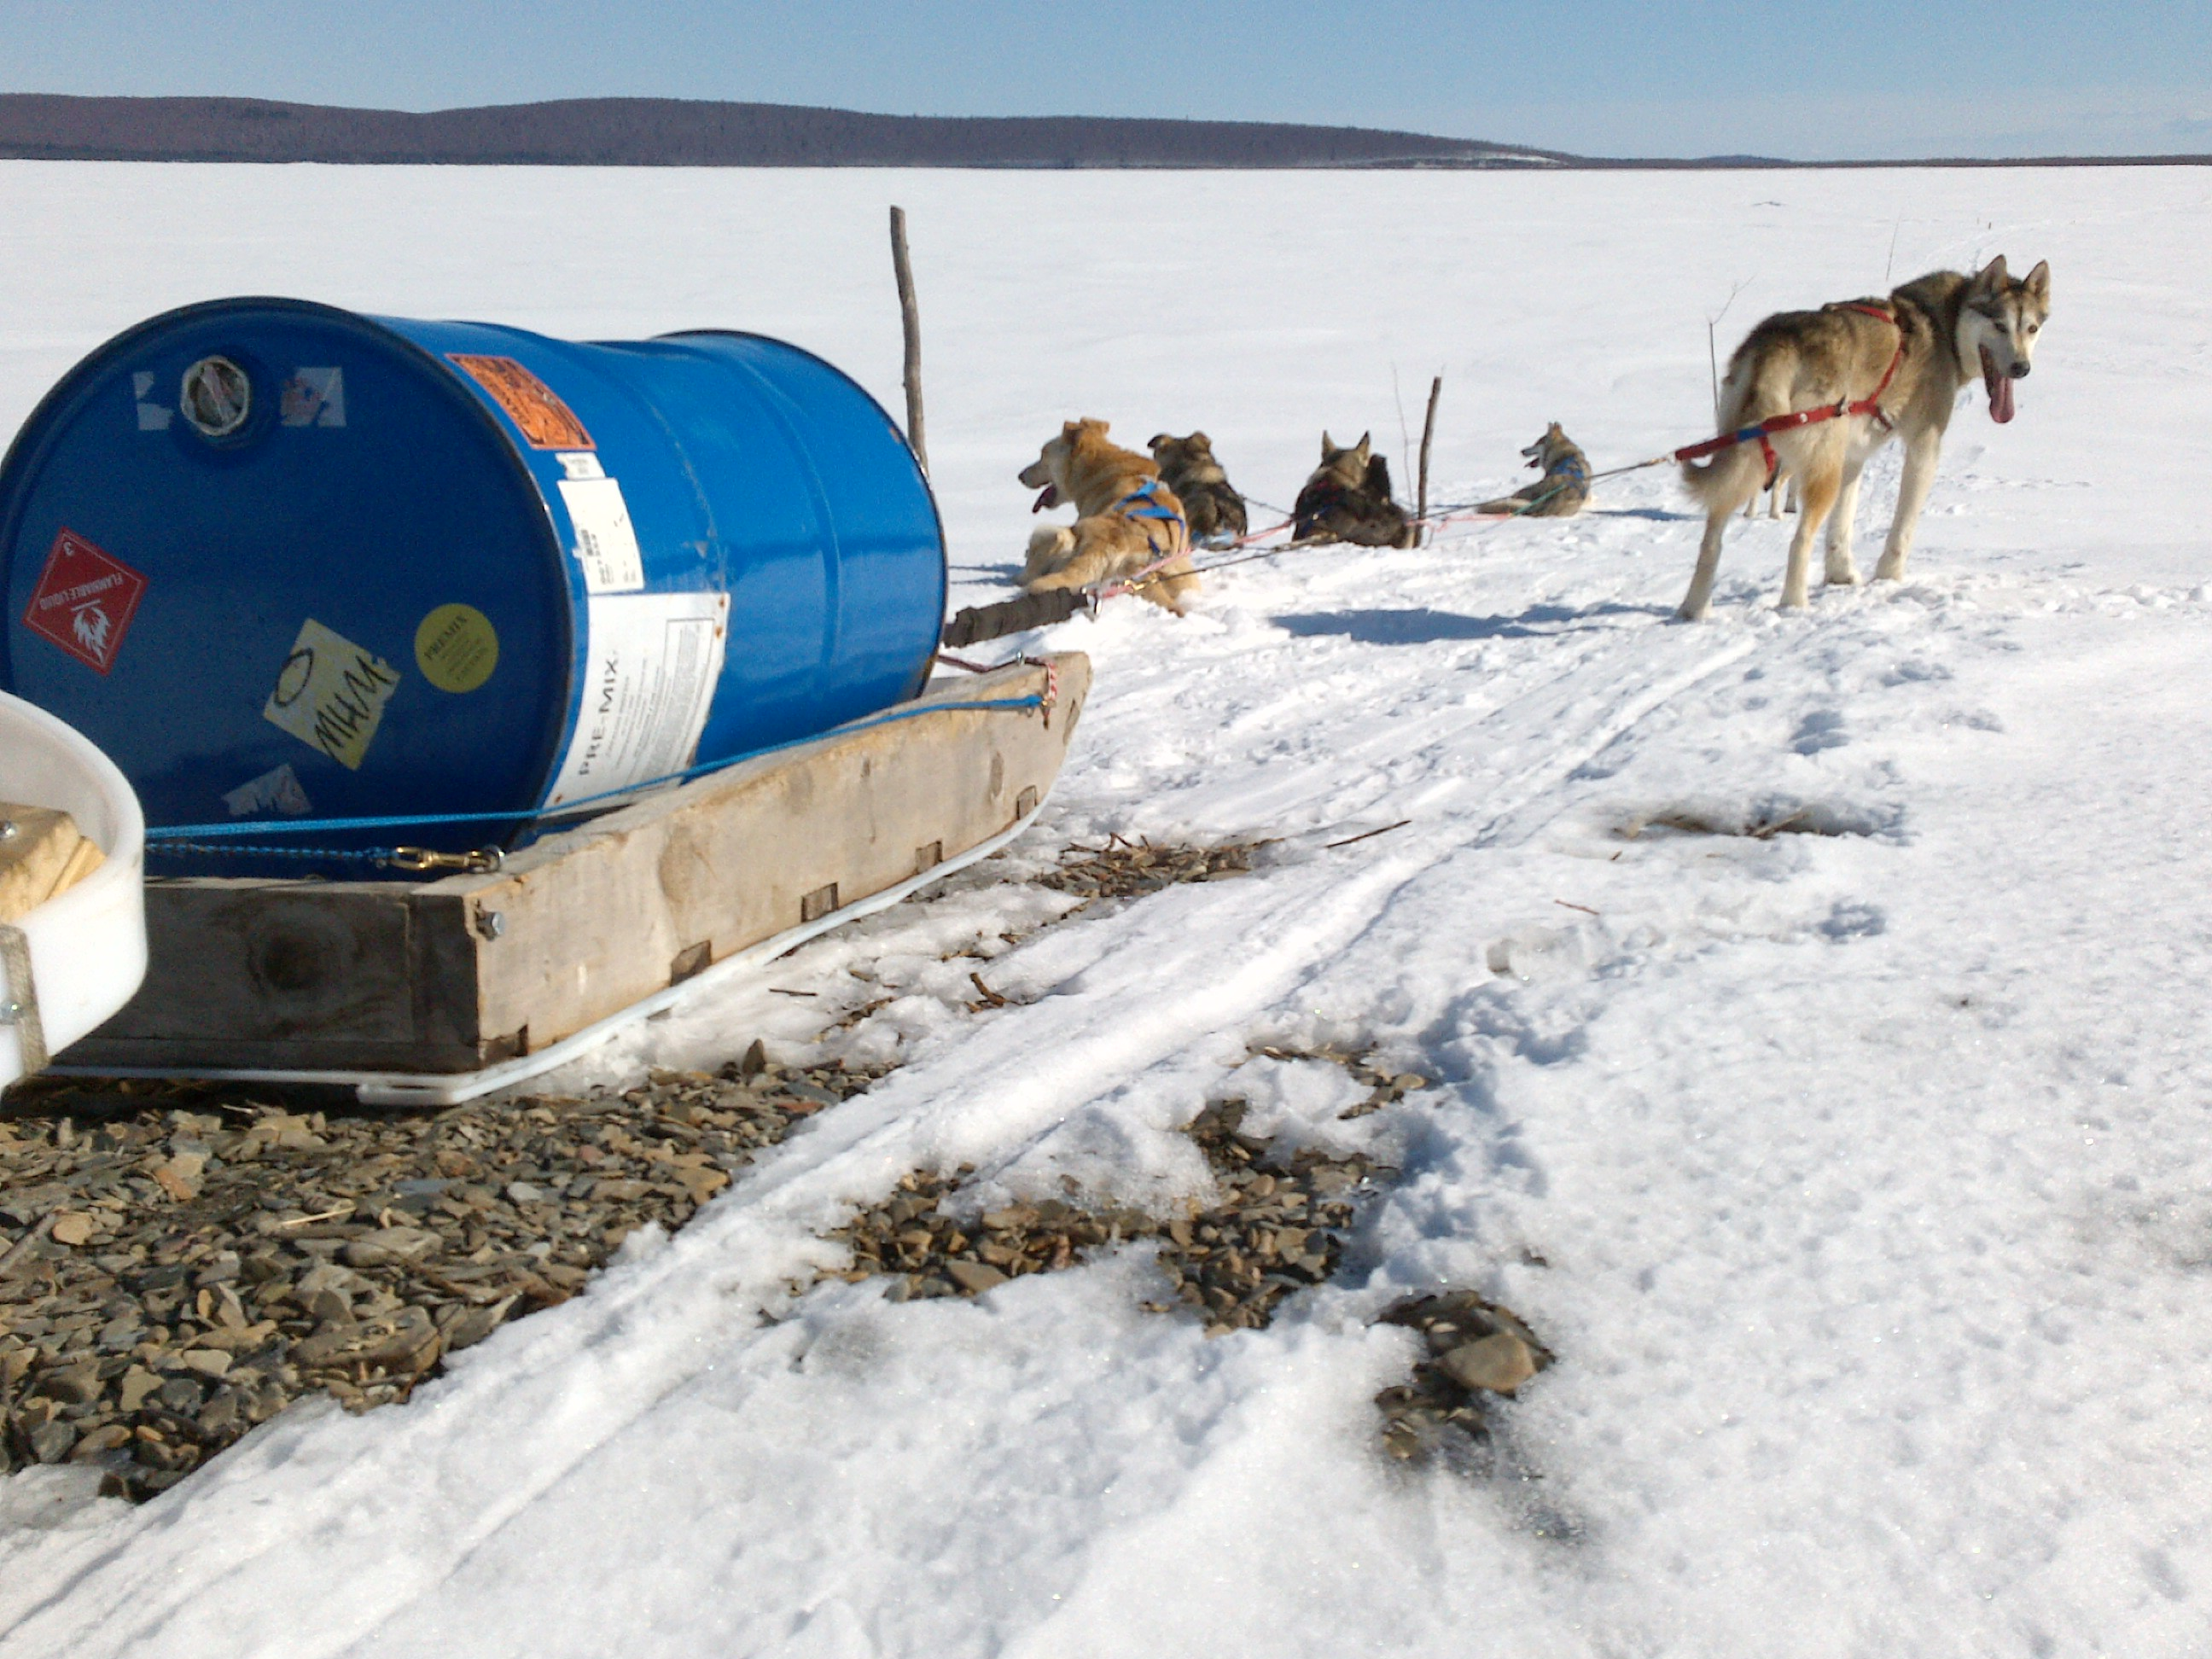 sled dogs pull supplies over bare patch of ground